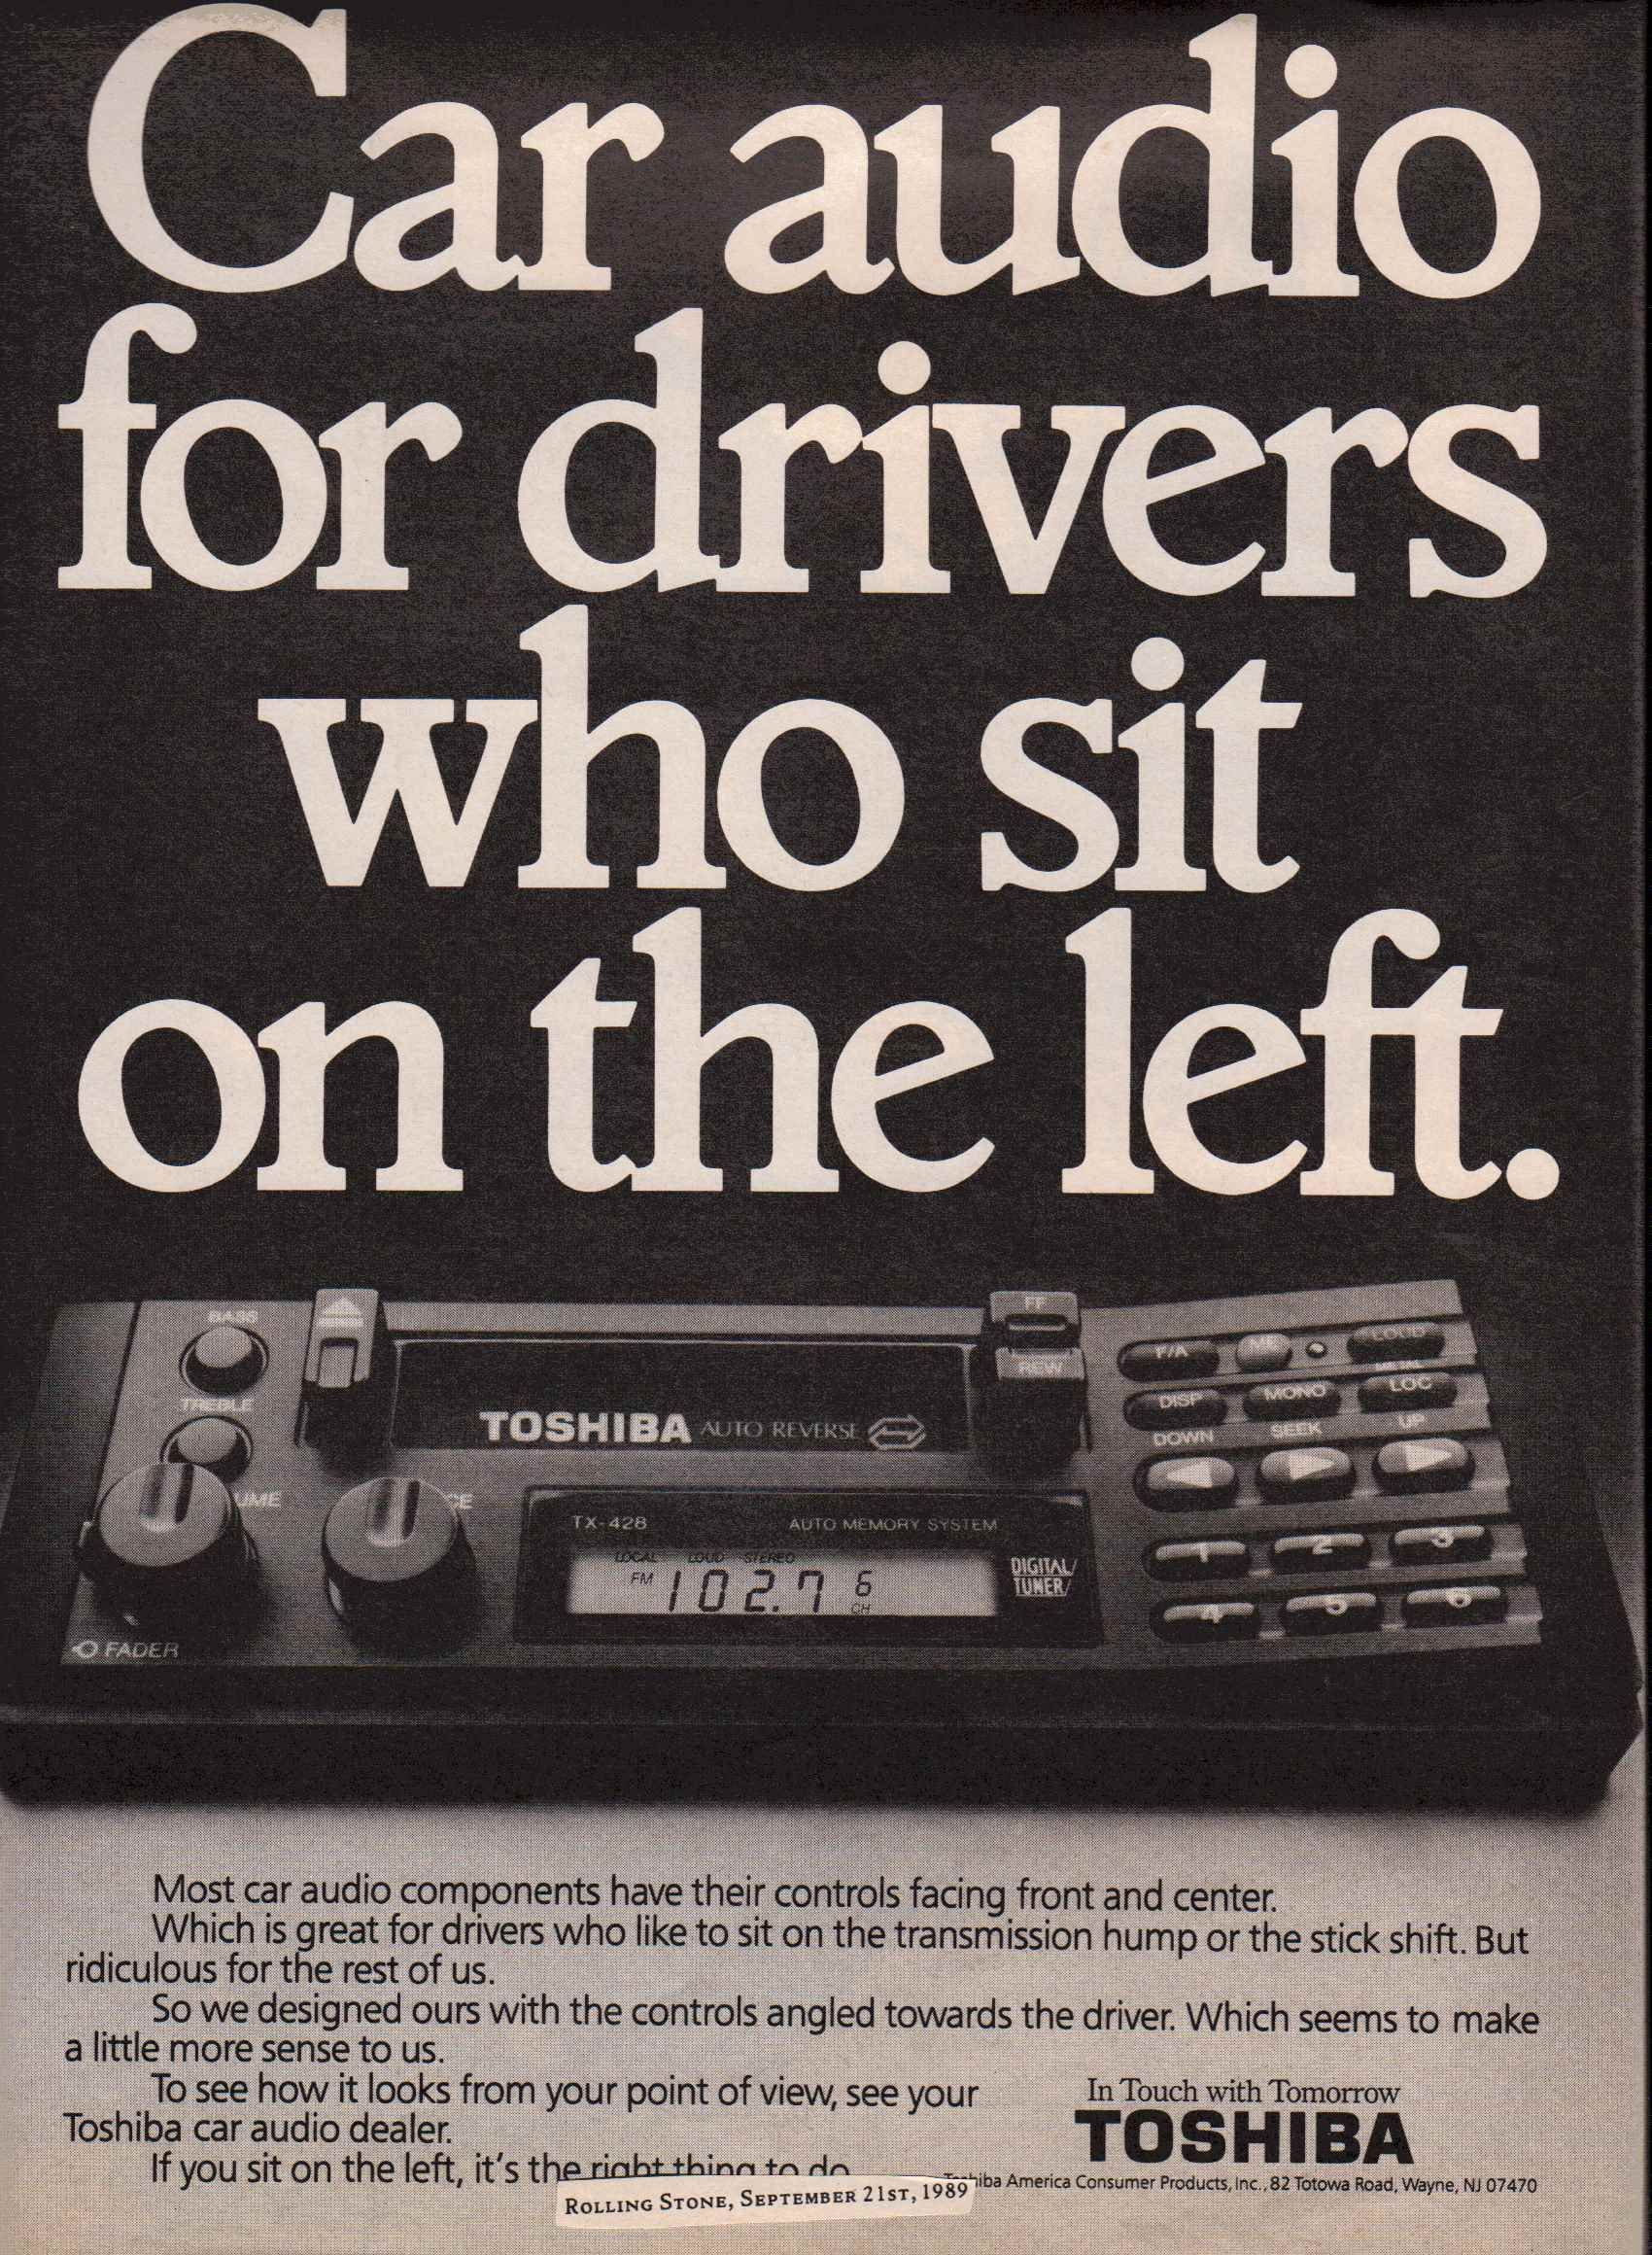 1989 Toshiba Tx 428 Car Stereo Ad Rolling Stone September 21